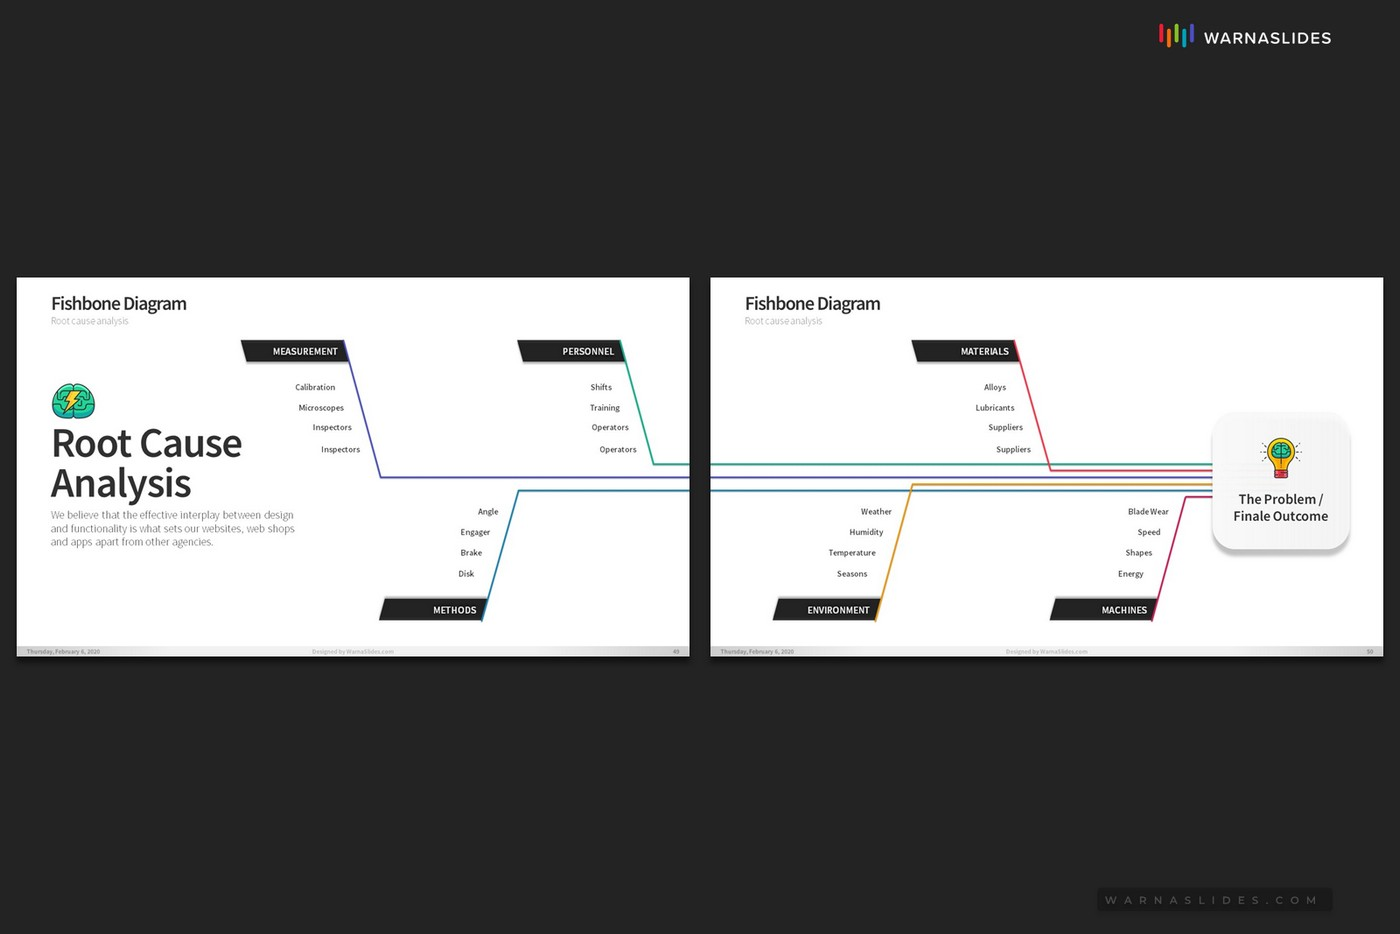 Fishbone-Ishikawa-Root-Cause-Analysis-Diagram-PowerPoint-Template-for-Business-Pitch-Deck-Professional-Creative-PowerPoint-Icons-014